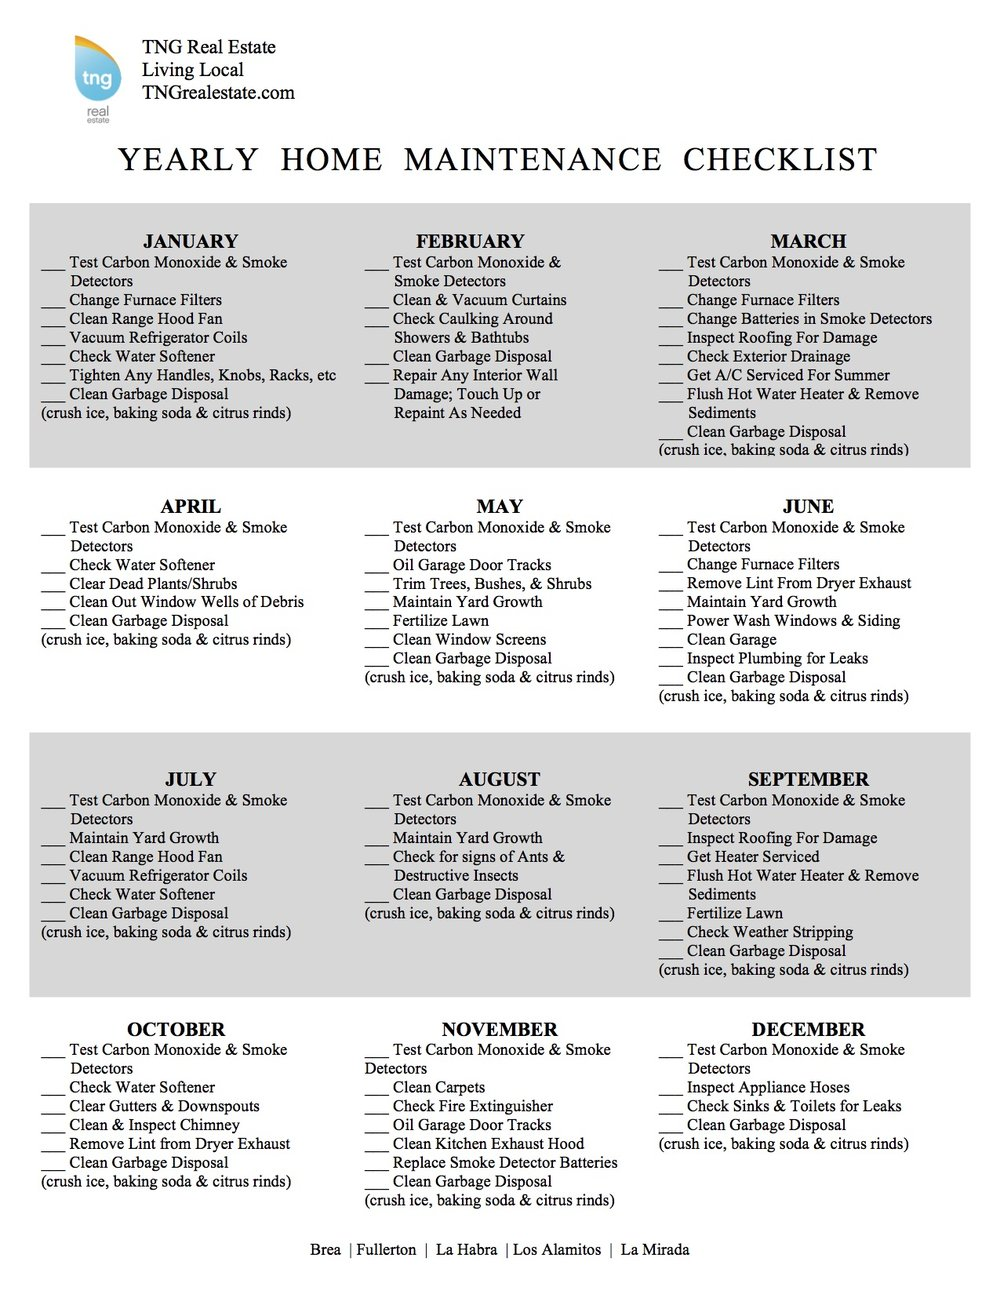 TNG_annual home maintenance checklist_final.jpg